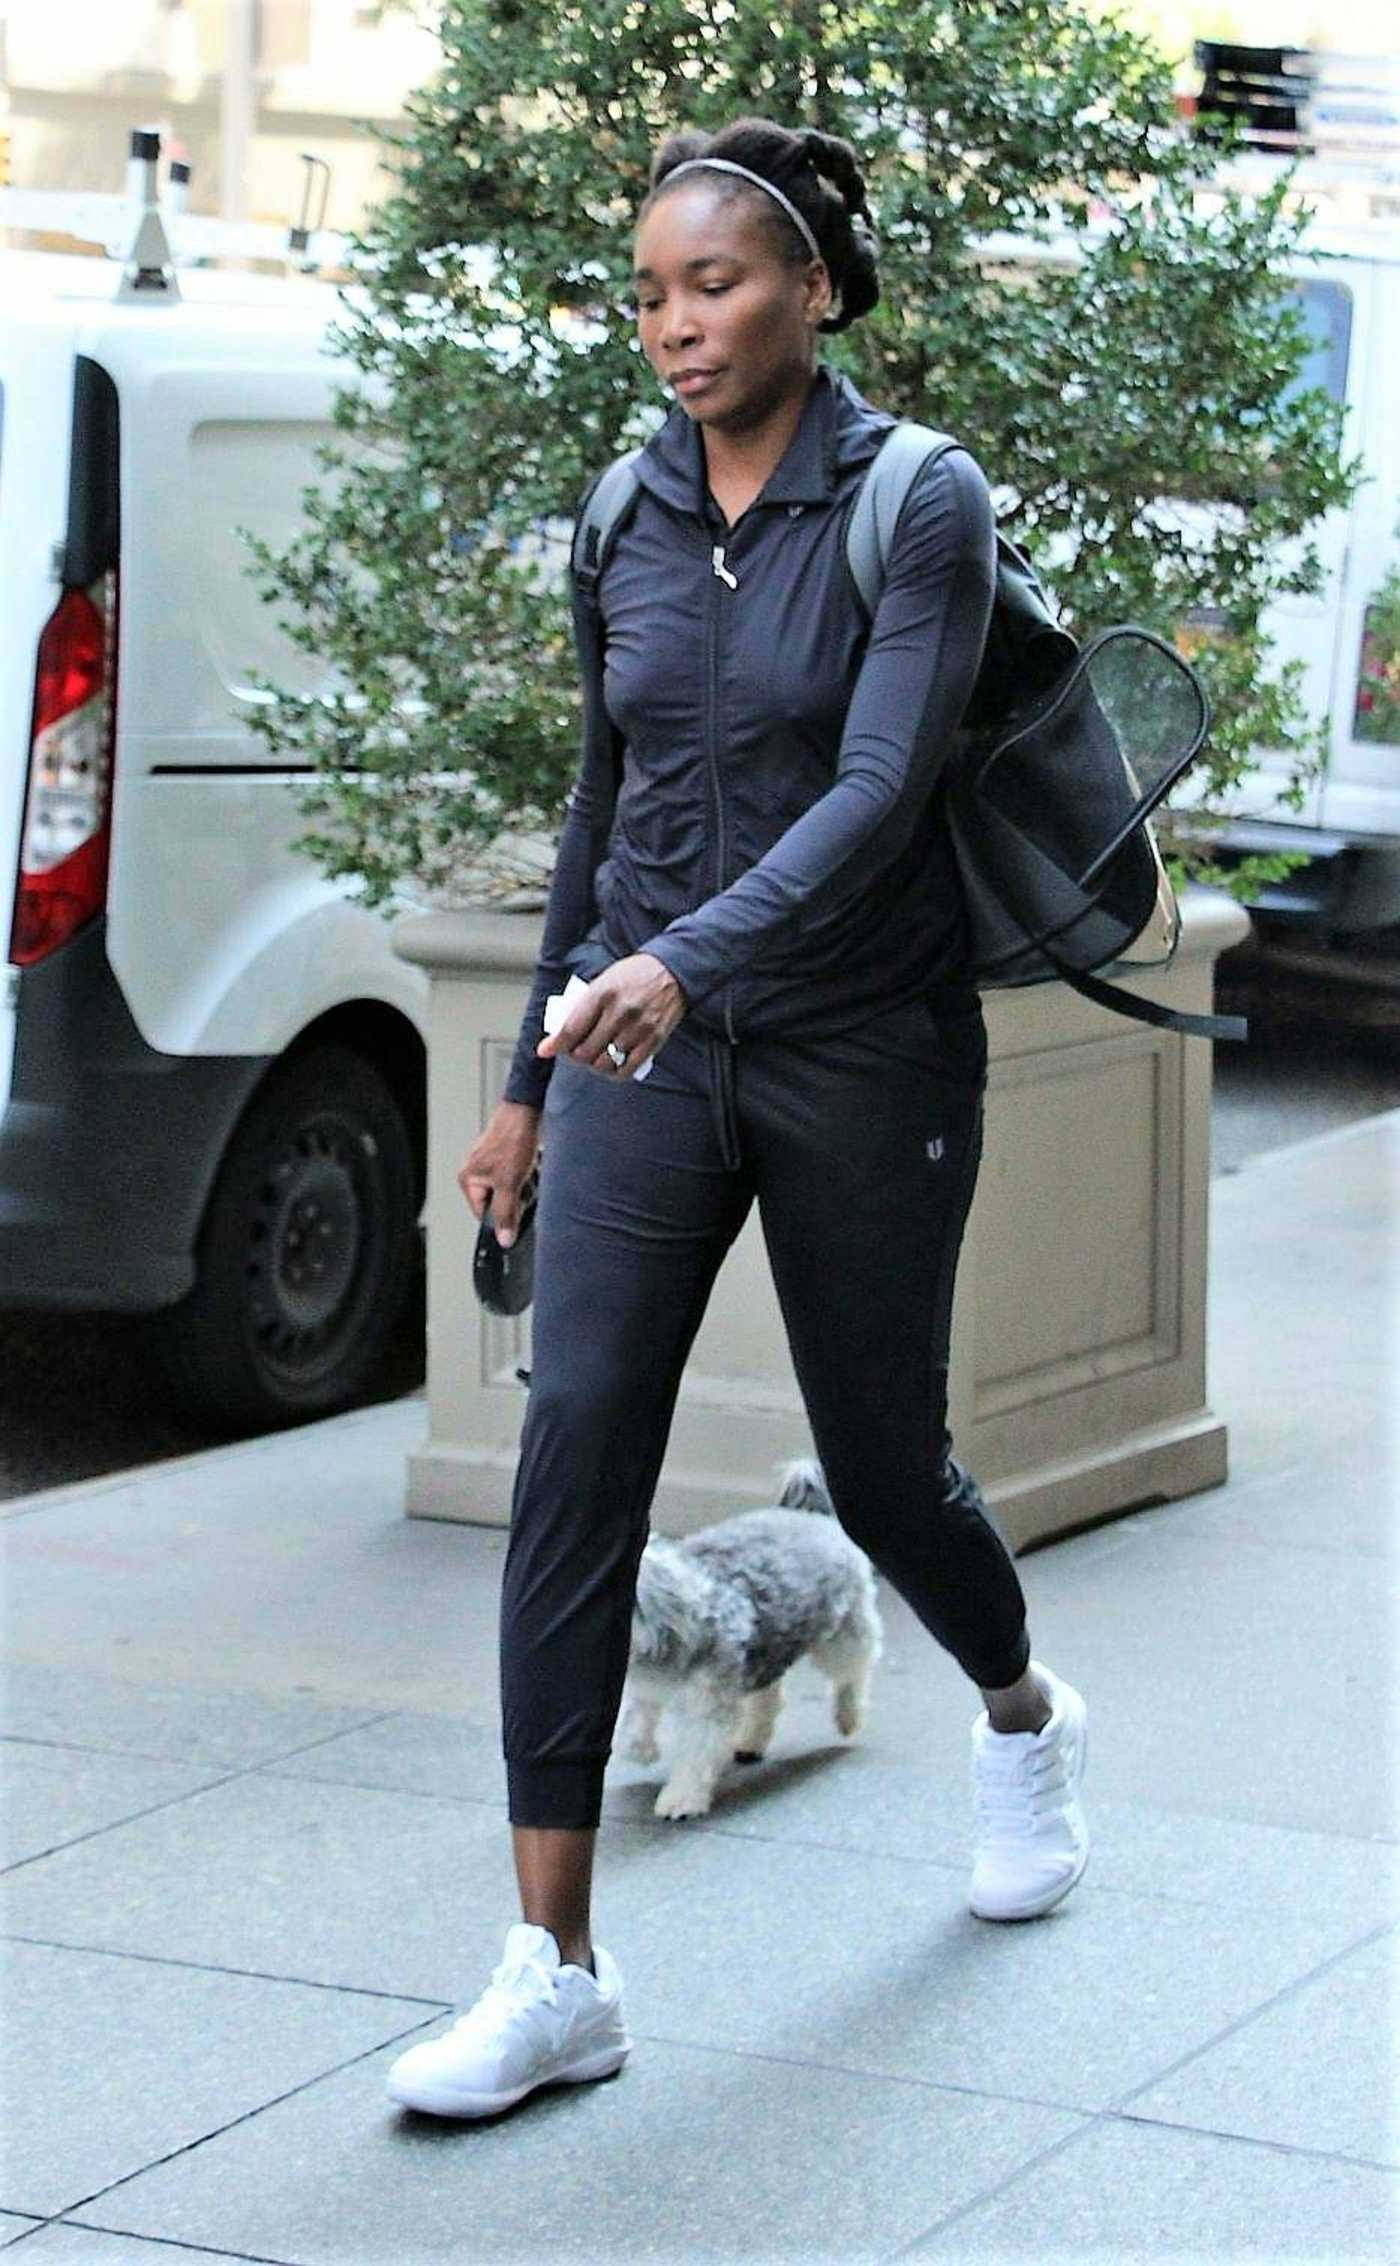 Venus Williams Walks Her Dog Out in New York City 08/24/2018